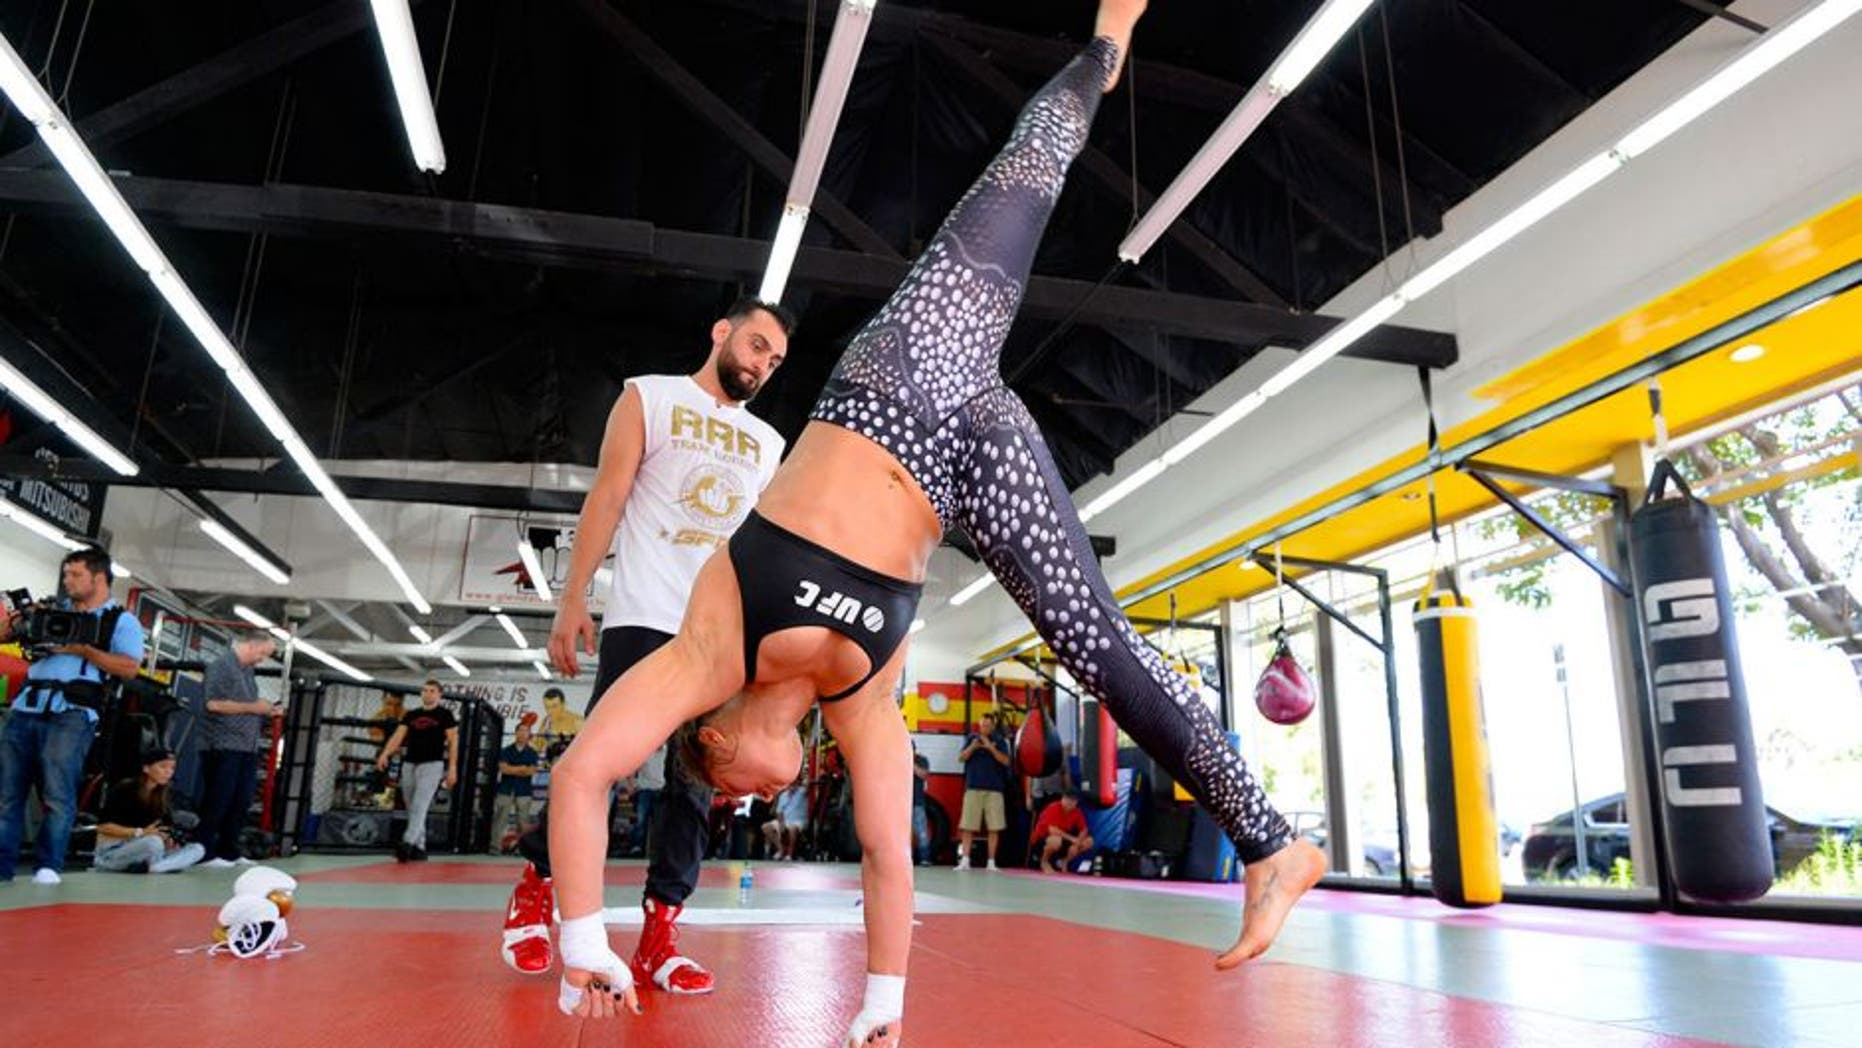 GLENDALE, CA - JULY 15: UFC Bantamweight champion Ronda Rousey works out during a media training session with trainer Edmond Tarverdyan at the Glendale Fight Club on July 15, 2015 in Glendale, California. (Photo by Robert Laberge/Zuffa LLC/Zuffa LLC via Getty Images)